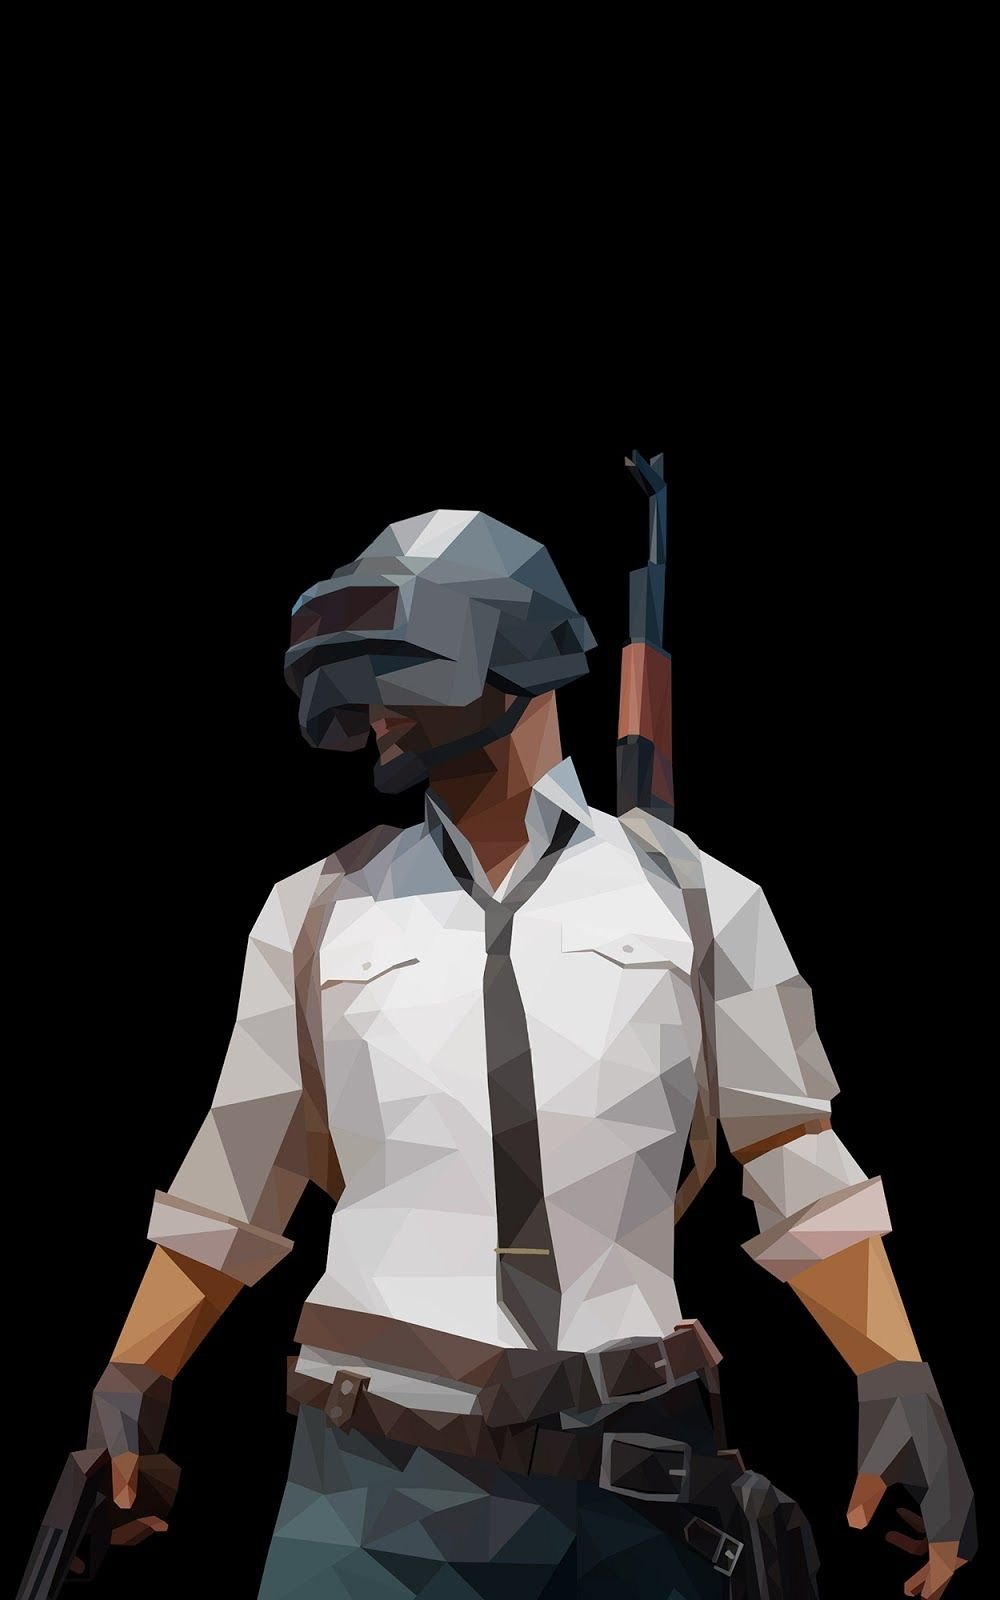 Pin by PUBG Wallpaper on PUBG Android wallpaper, Mobile